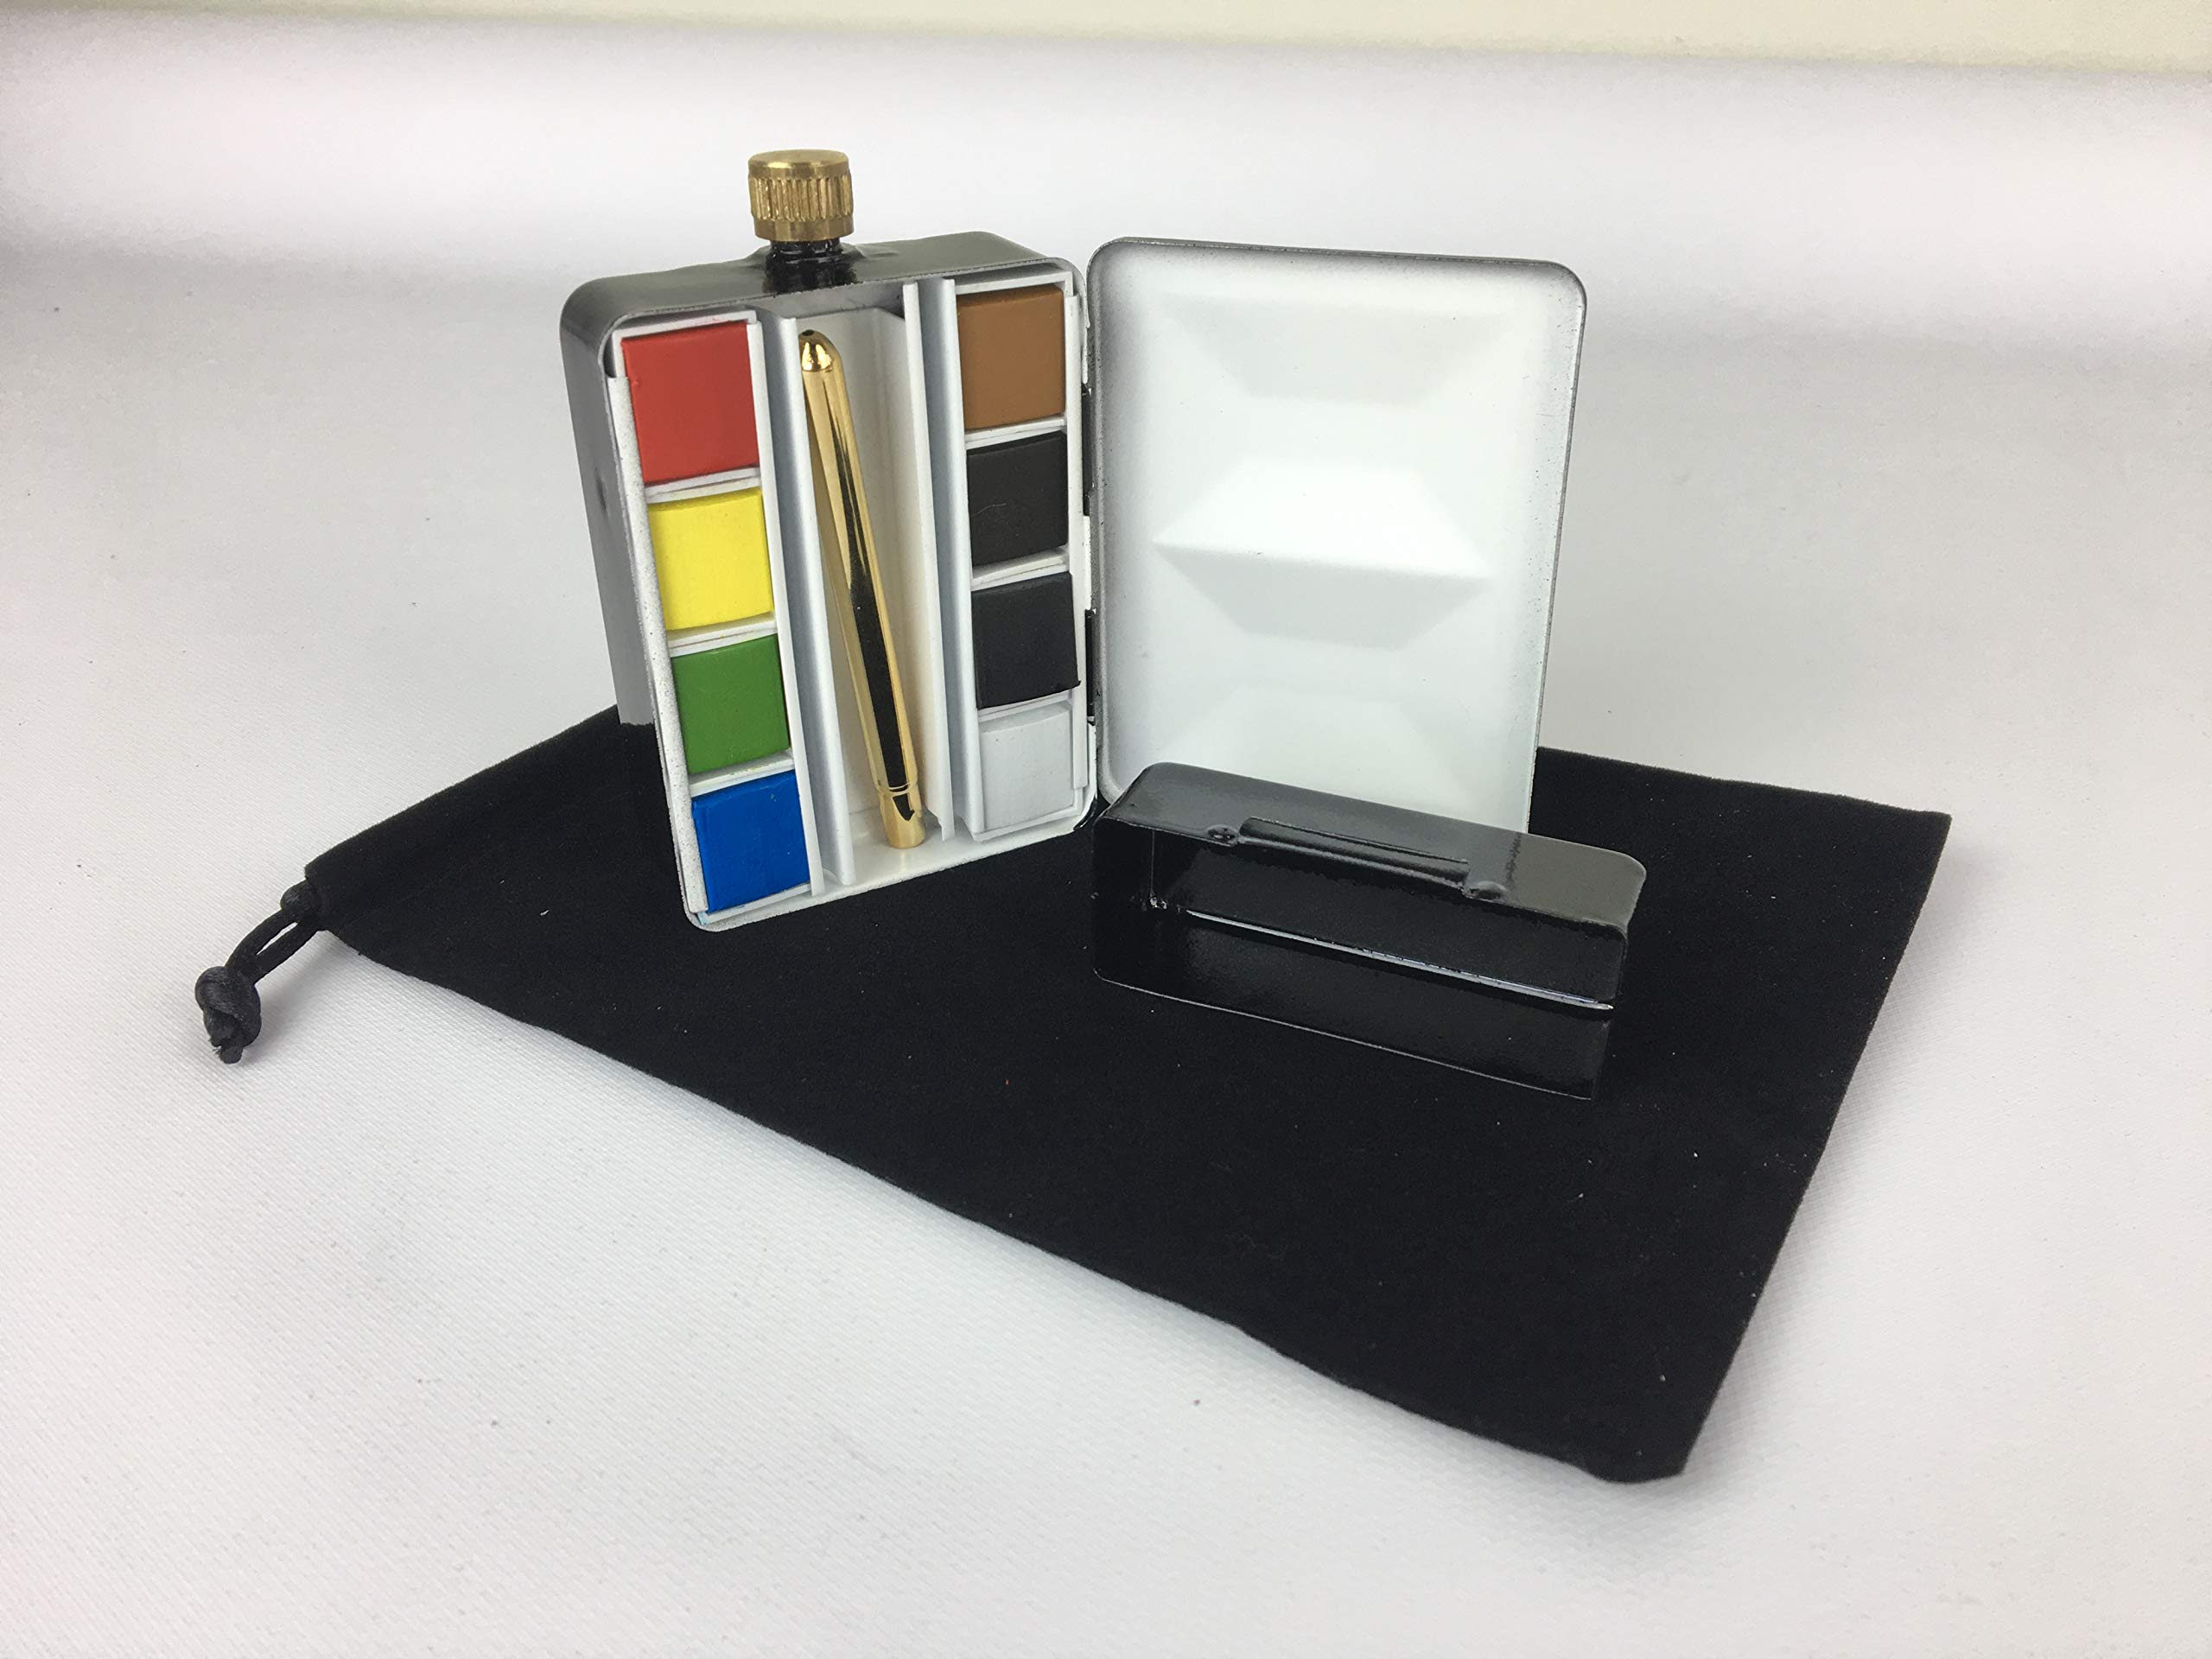 Whiskey Painters Empty Artist 8 Half Pan, Pocket Size,Travel Friendly Flask Palette & Water Reservoir Holder Hand Made in Italy